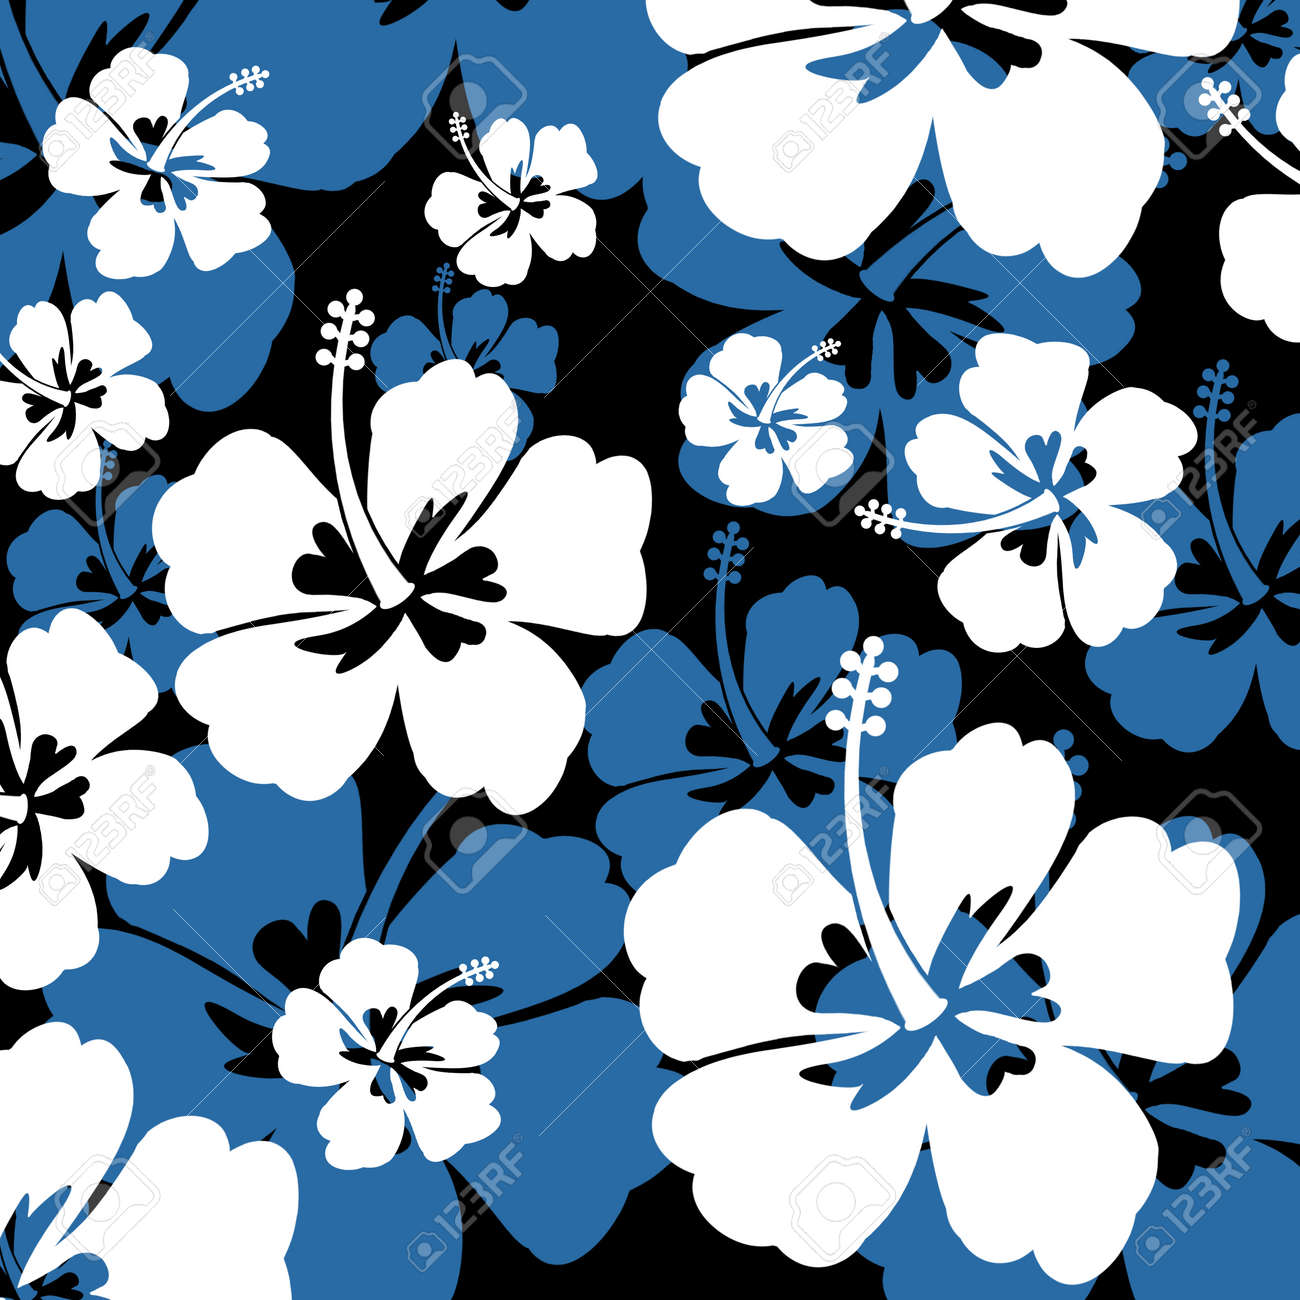 Seamless pattern with white and blue hibiscus flowers on black seamless pattern with white and blue hibiscus flowers on black background vector illustration stock vector dhlflorist Images